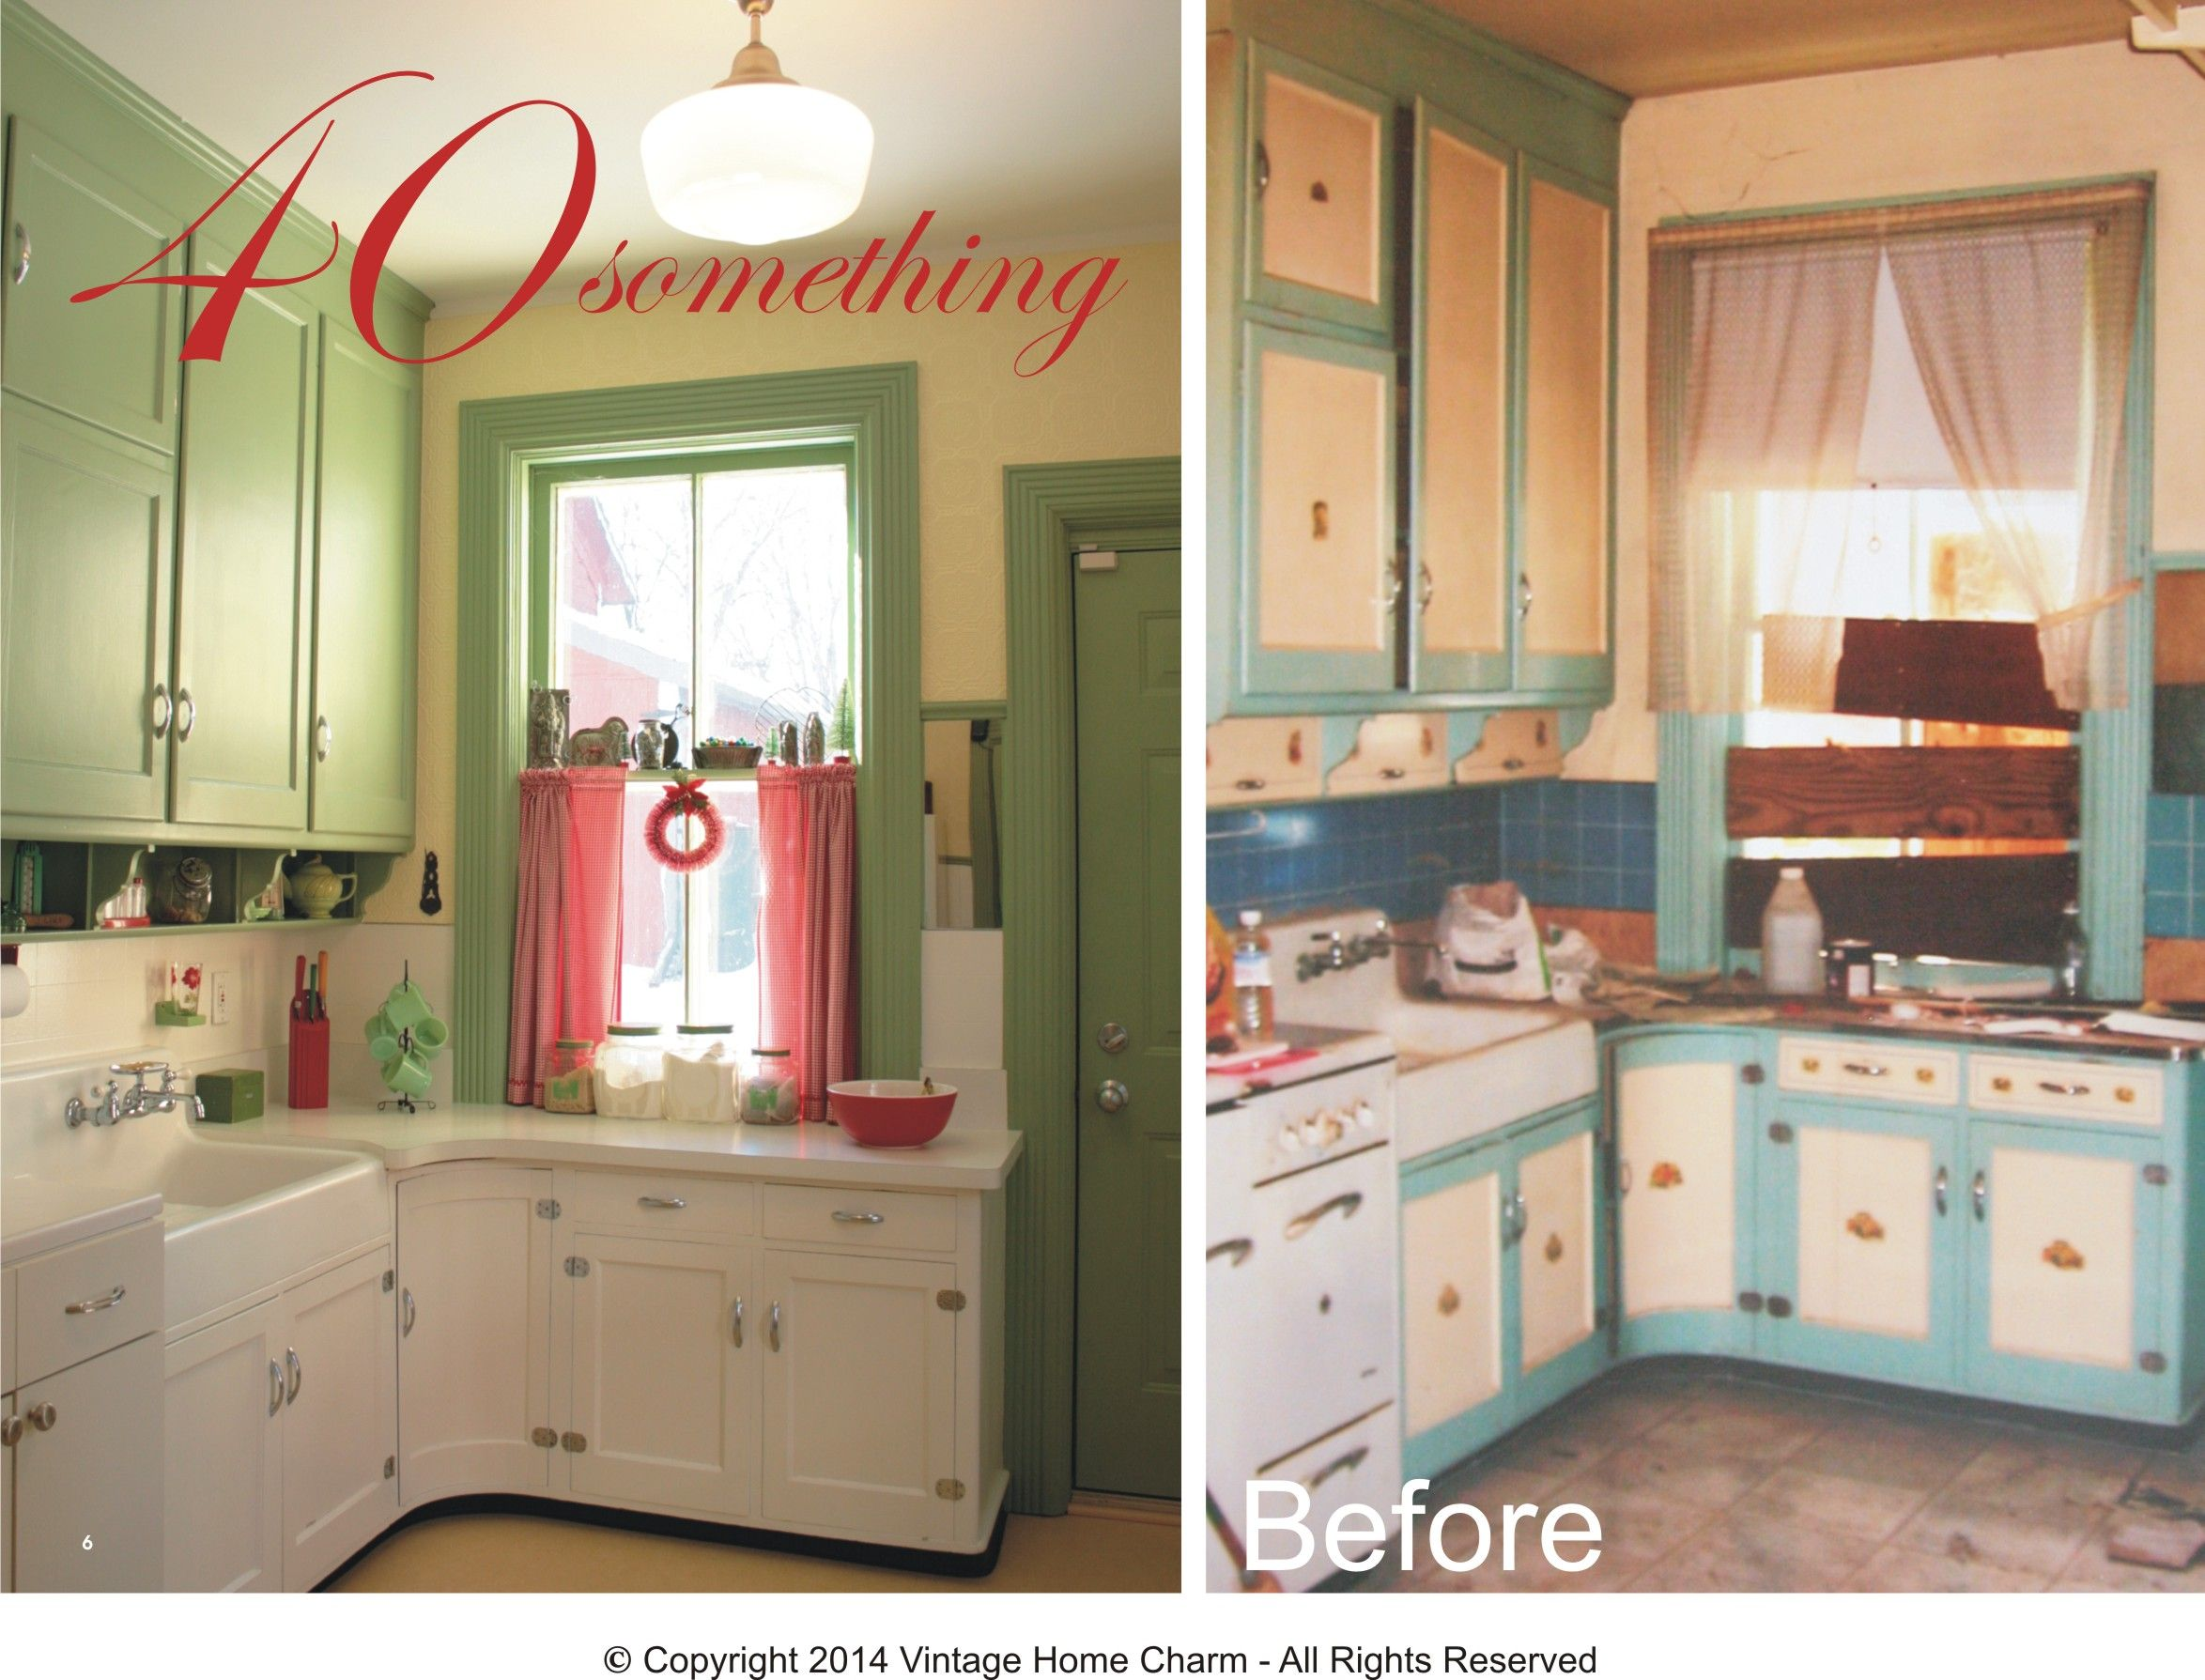 Restyling a s vintage kitchen without major remodel Vintage